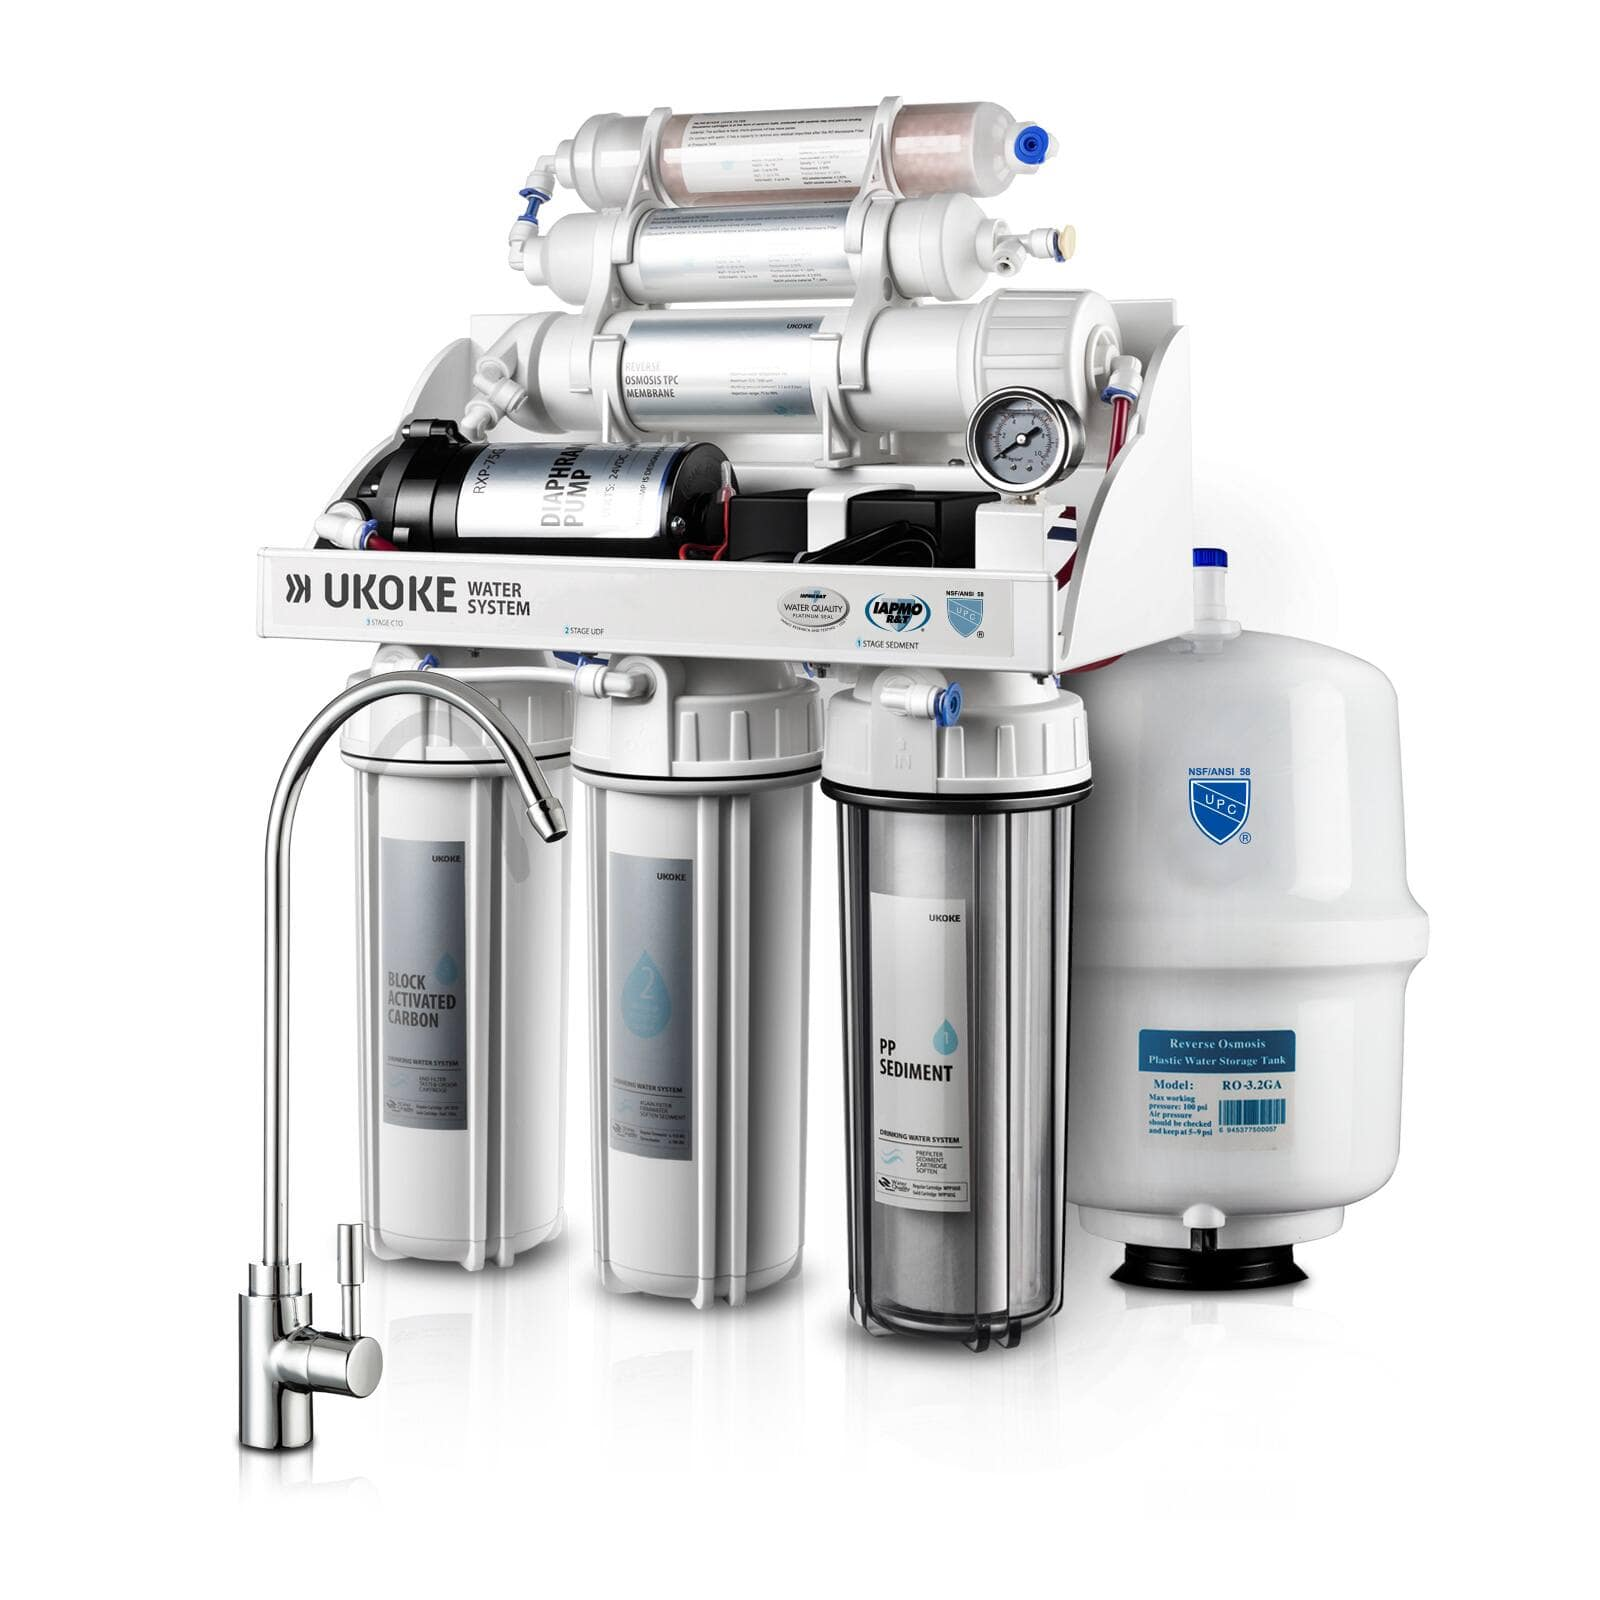 38% off Ukoke 6 Stages Reverse Osmosis, Water Filtration System, 75 GPD w/ Pump for $154.88 + Free Shipping